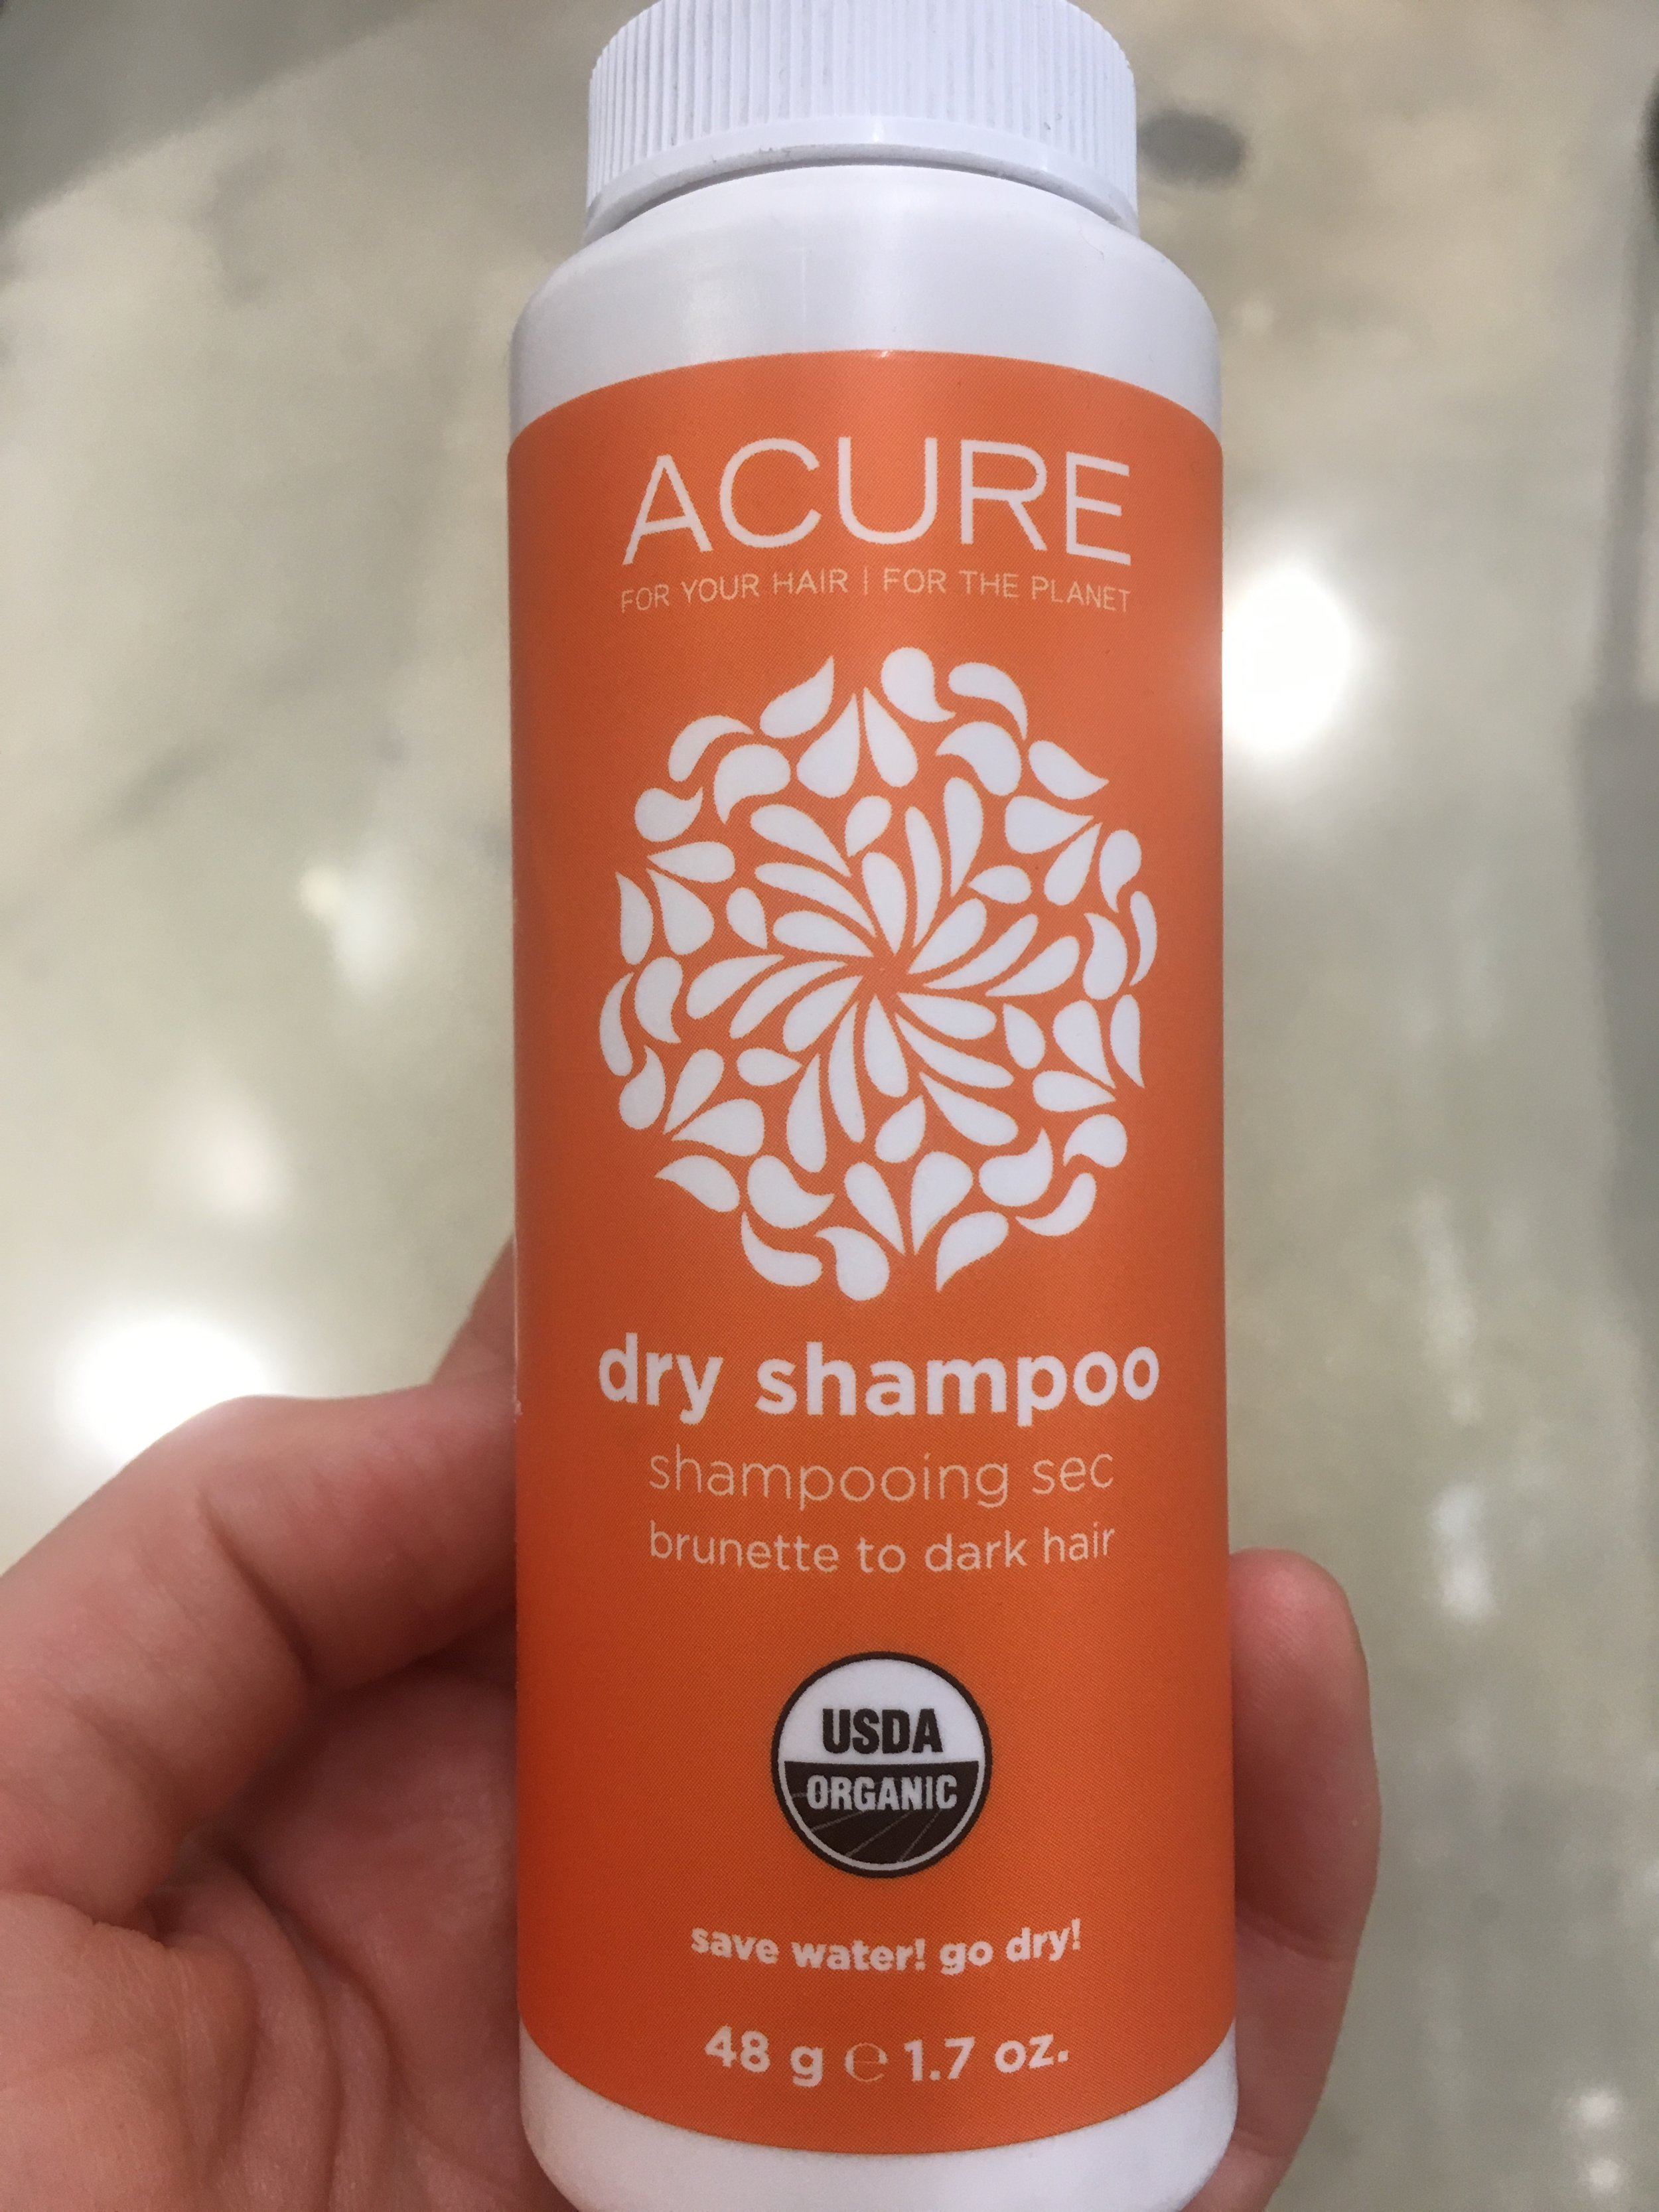 Acure Dry Shampoo - This organic dry shampoo is vegan, sulfate free, paraben free, cruelty free and color safe. It is nontoxic alternative to other dry shampoos, and works great!